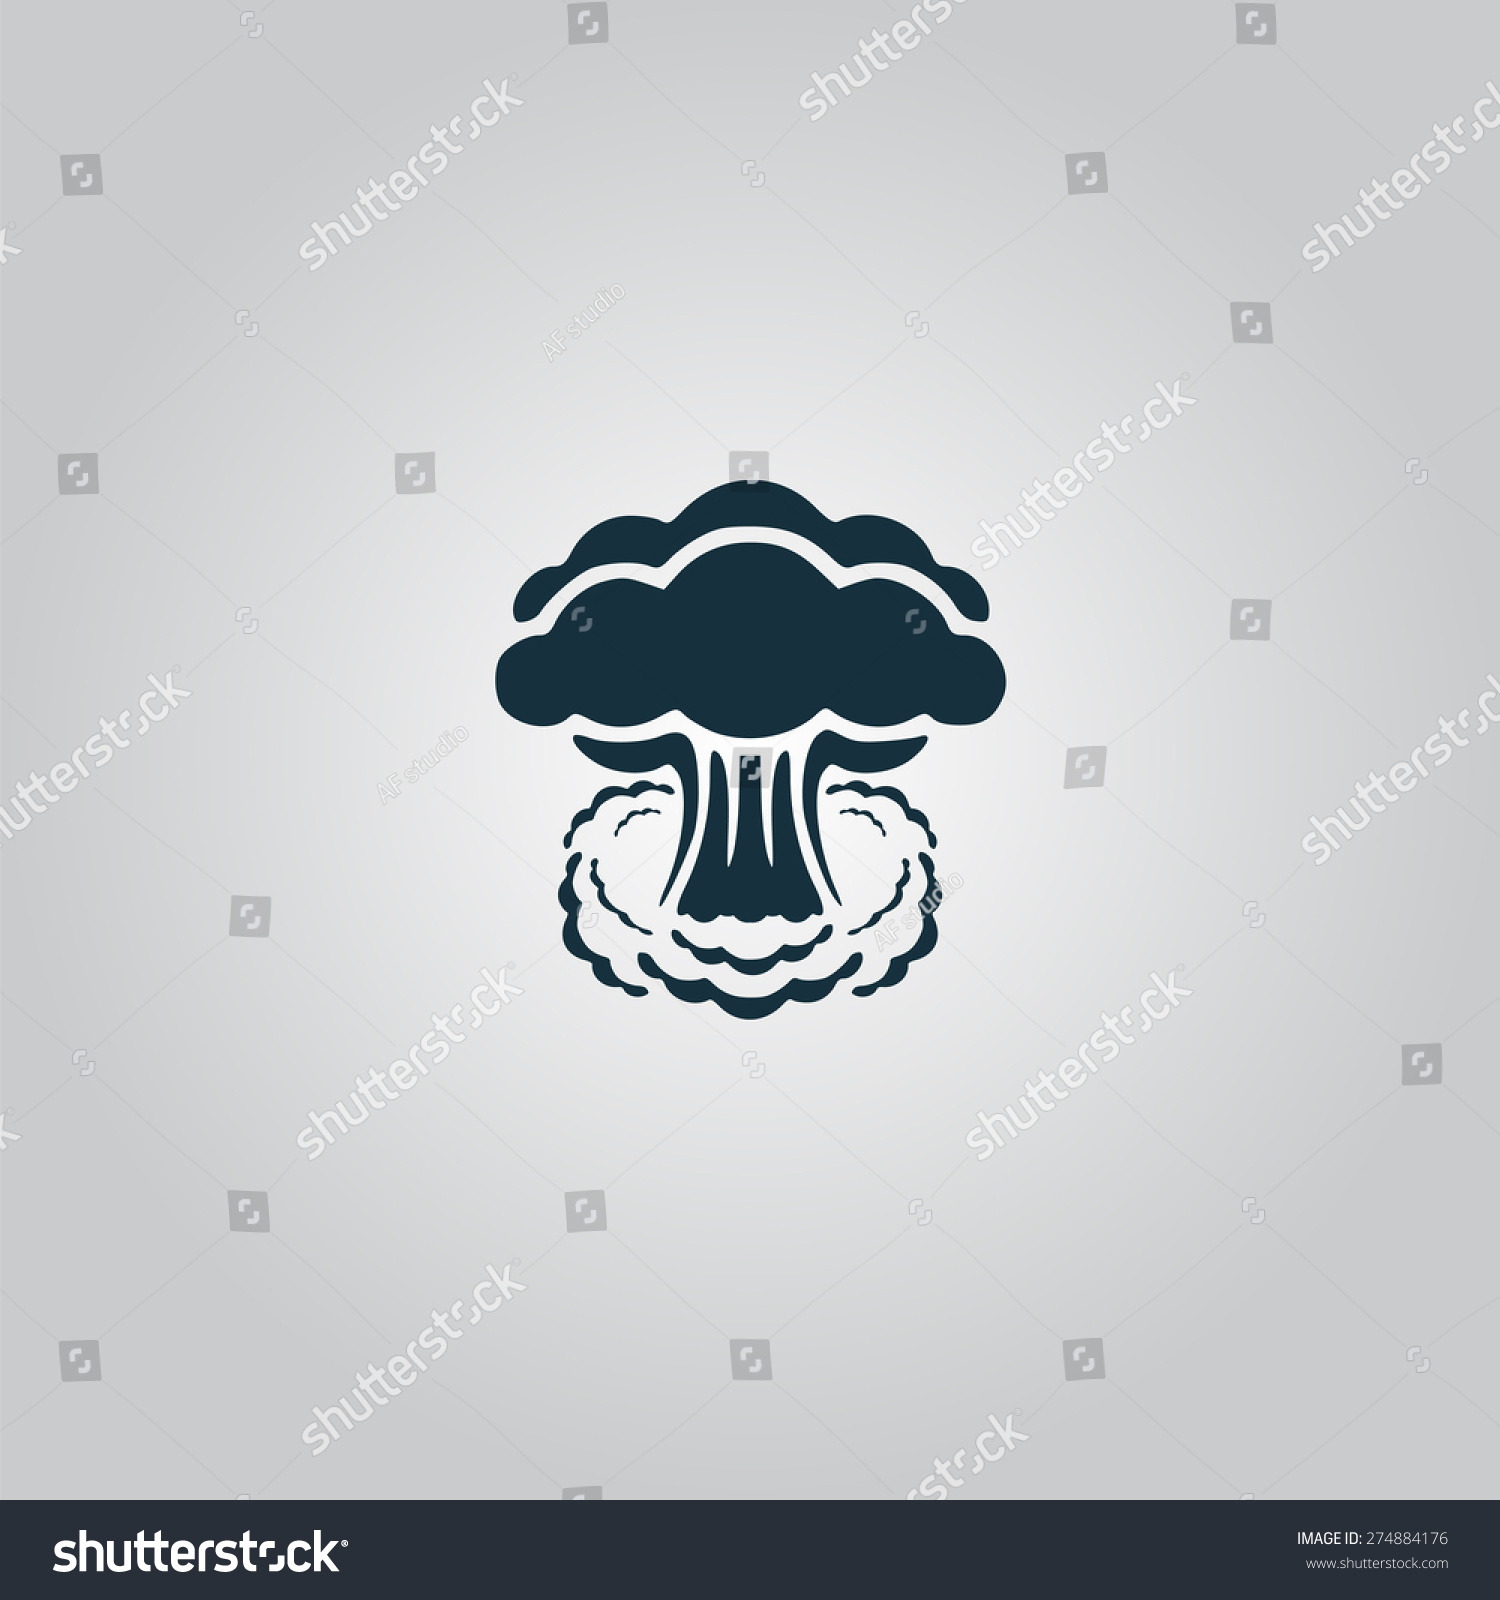 Mushroom Cloud Nuclear Explosion Silhouette Flat Stock Vector 274884176 - Shutterstock